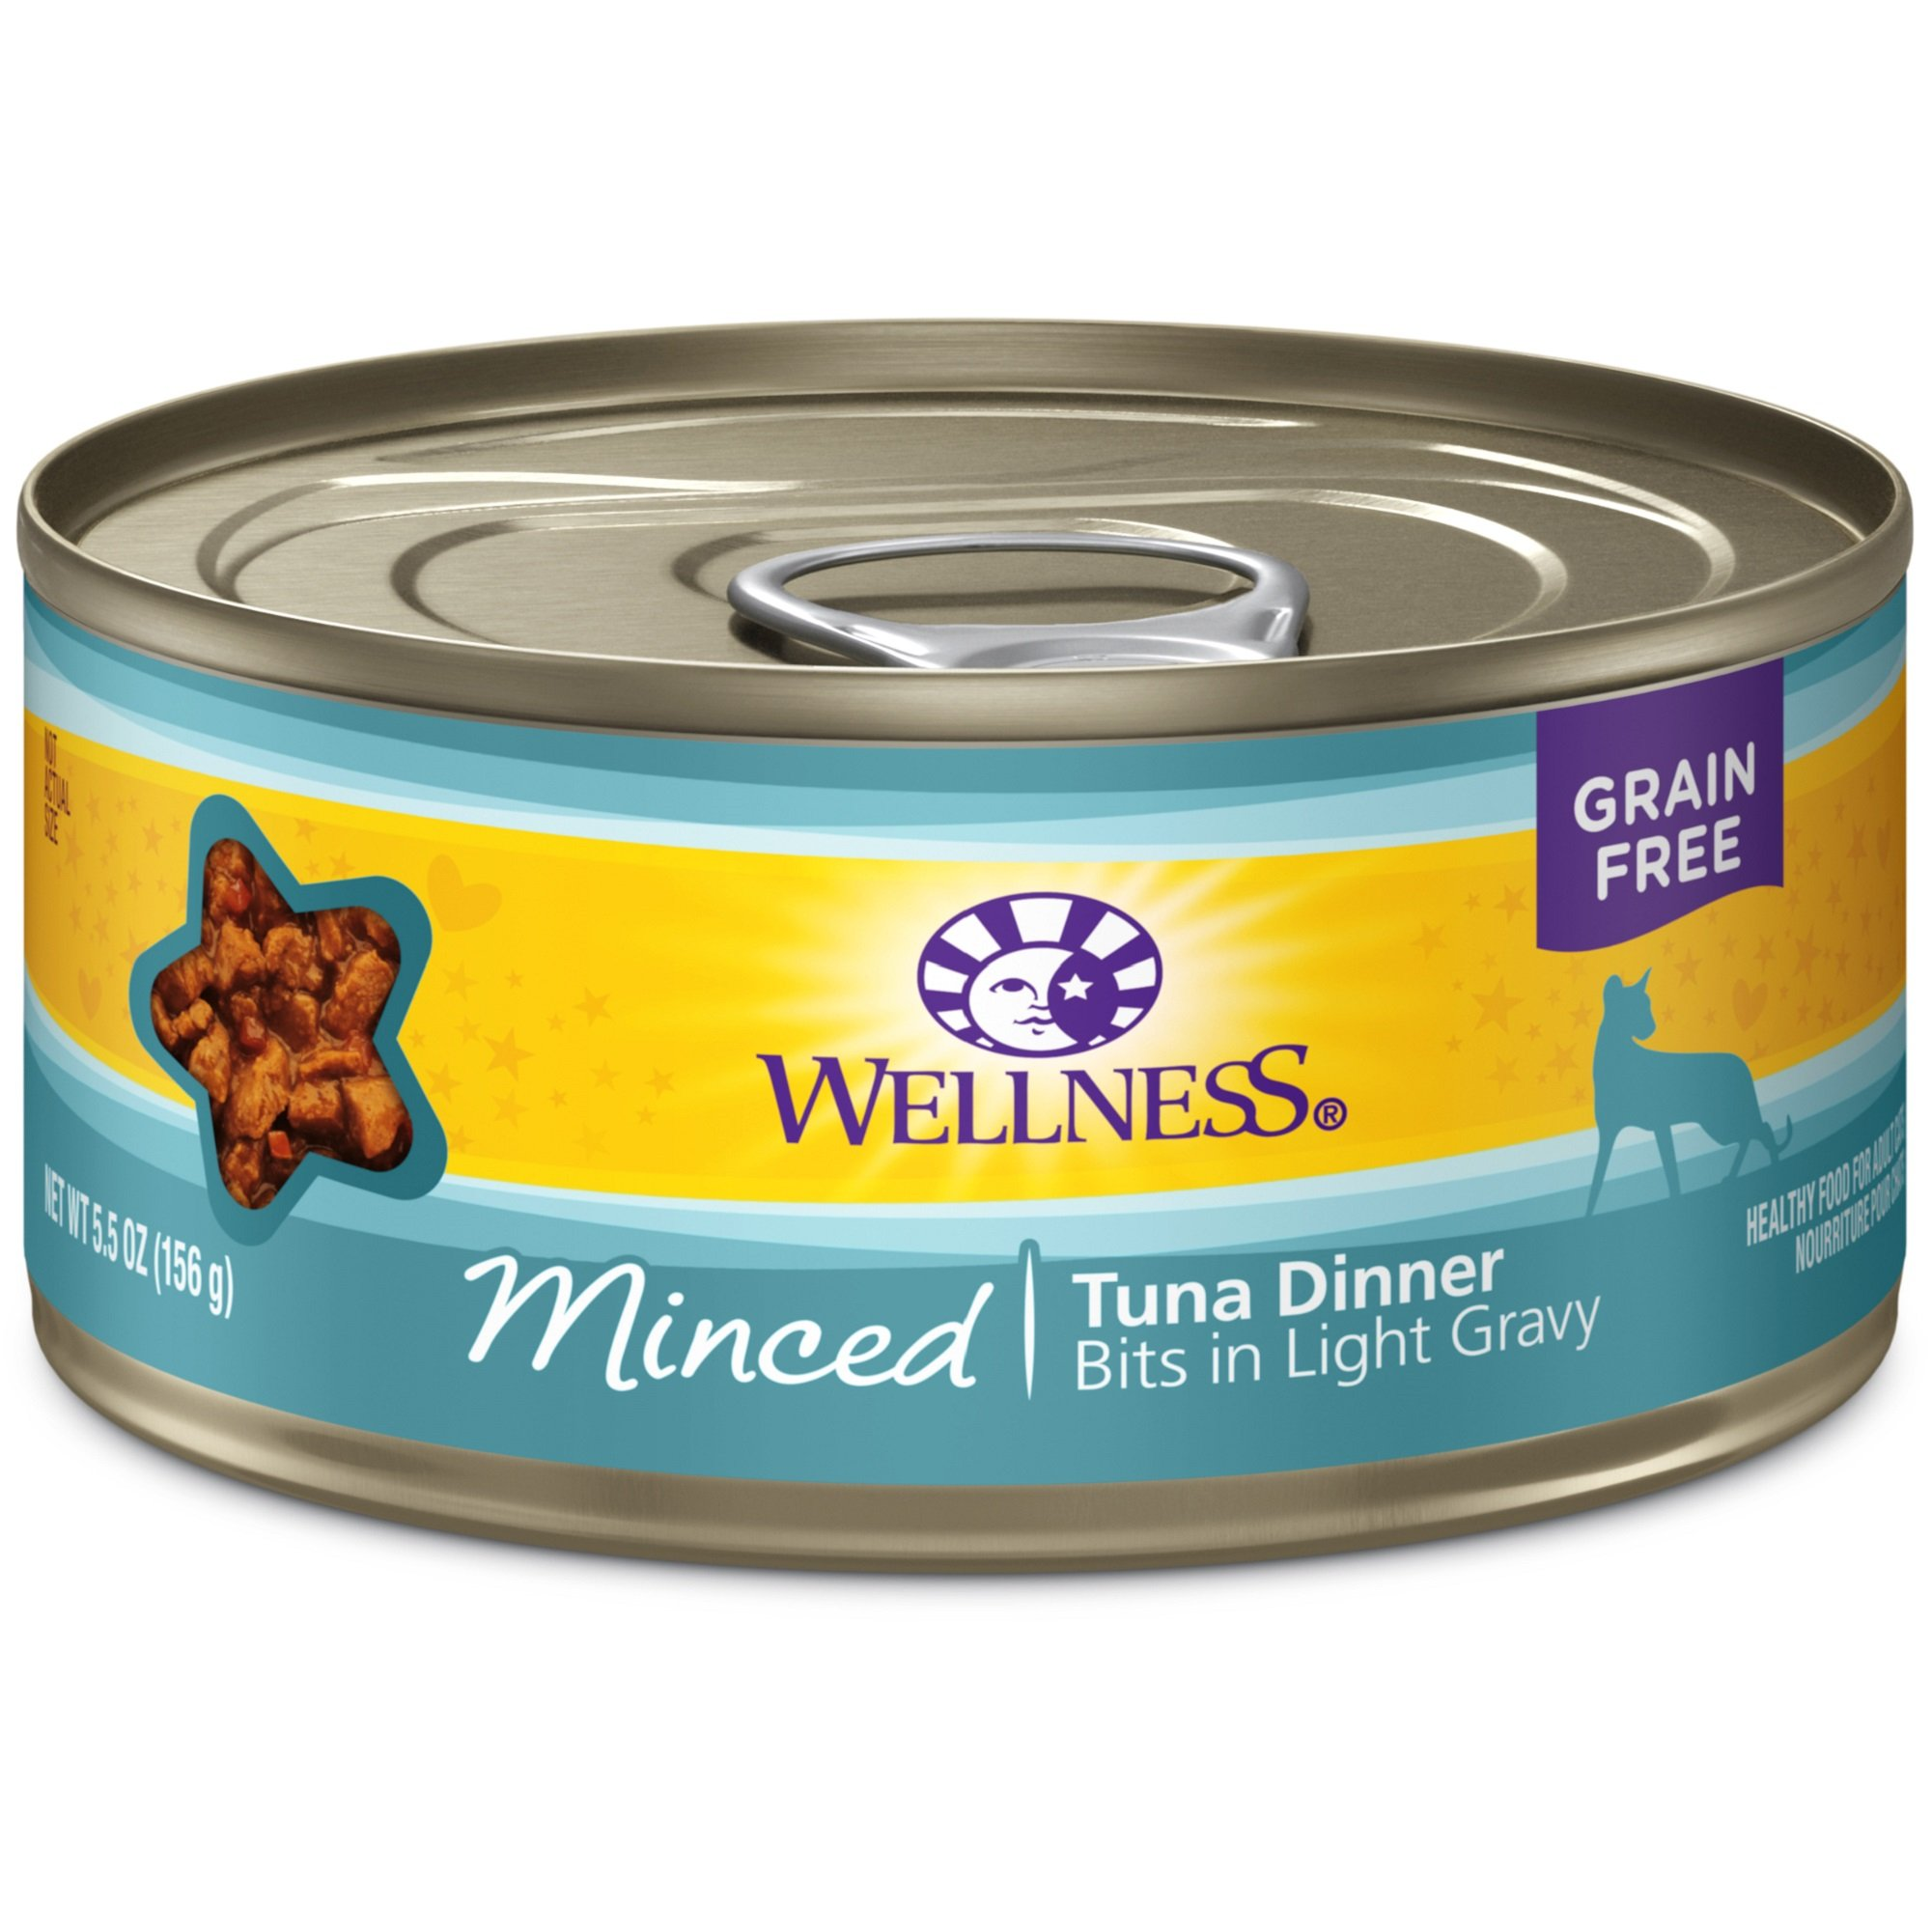 Wellness Complete Health Natural Grain Free Wet Canned Cat Food, Minced Tuna Dinner, 5.5-Ounce Can (Pack Of 24) by Wellness Natural Pet Food